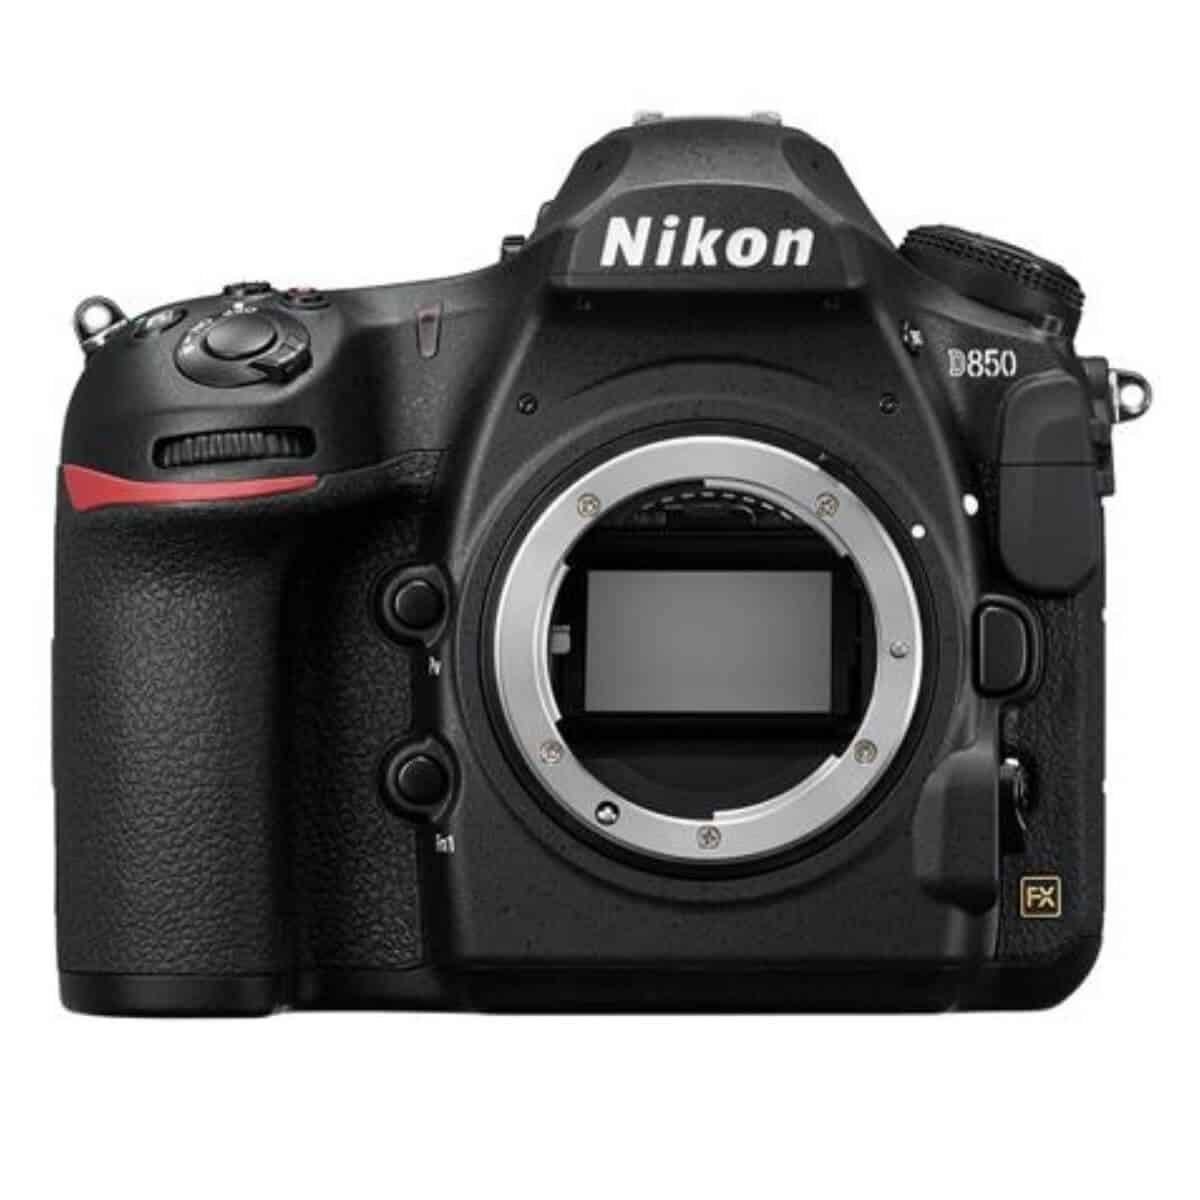 Nikon D850 camera without the lens.